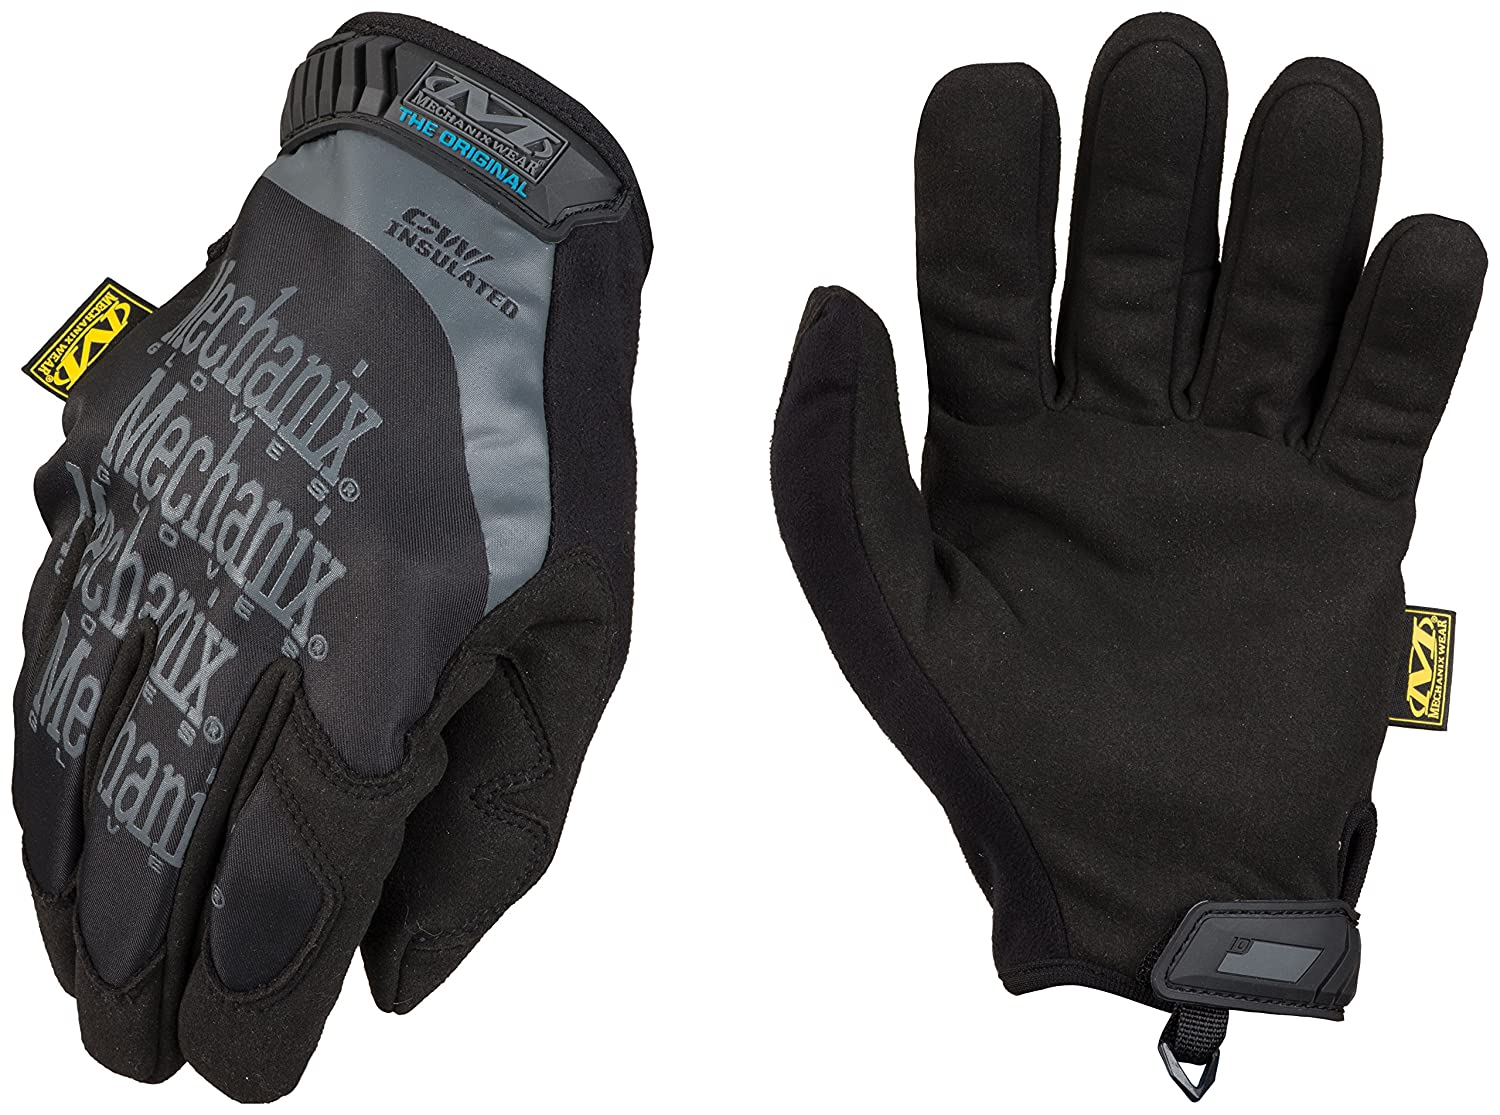 Mechanix Wear - Original Insulated Winter Gloves (XX-Large, Black) MG-95-012